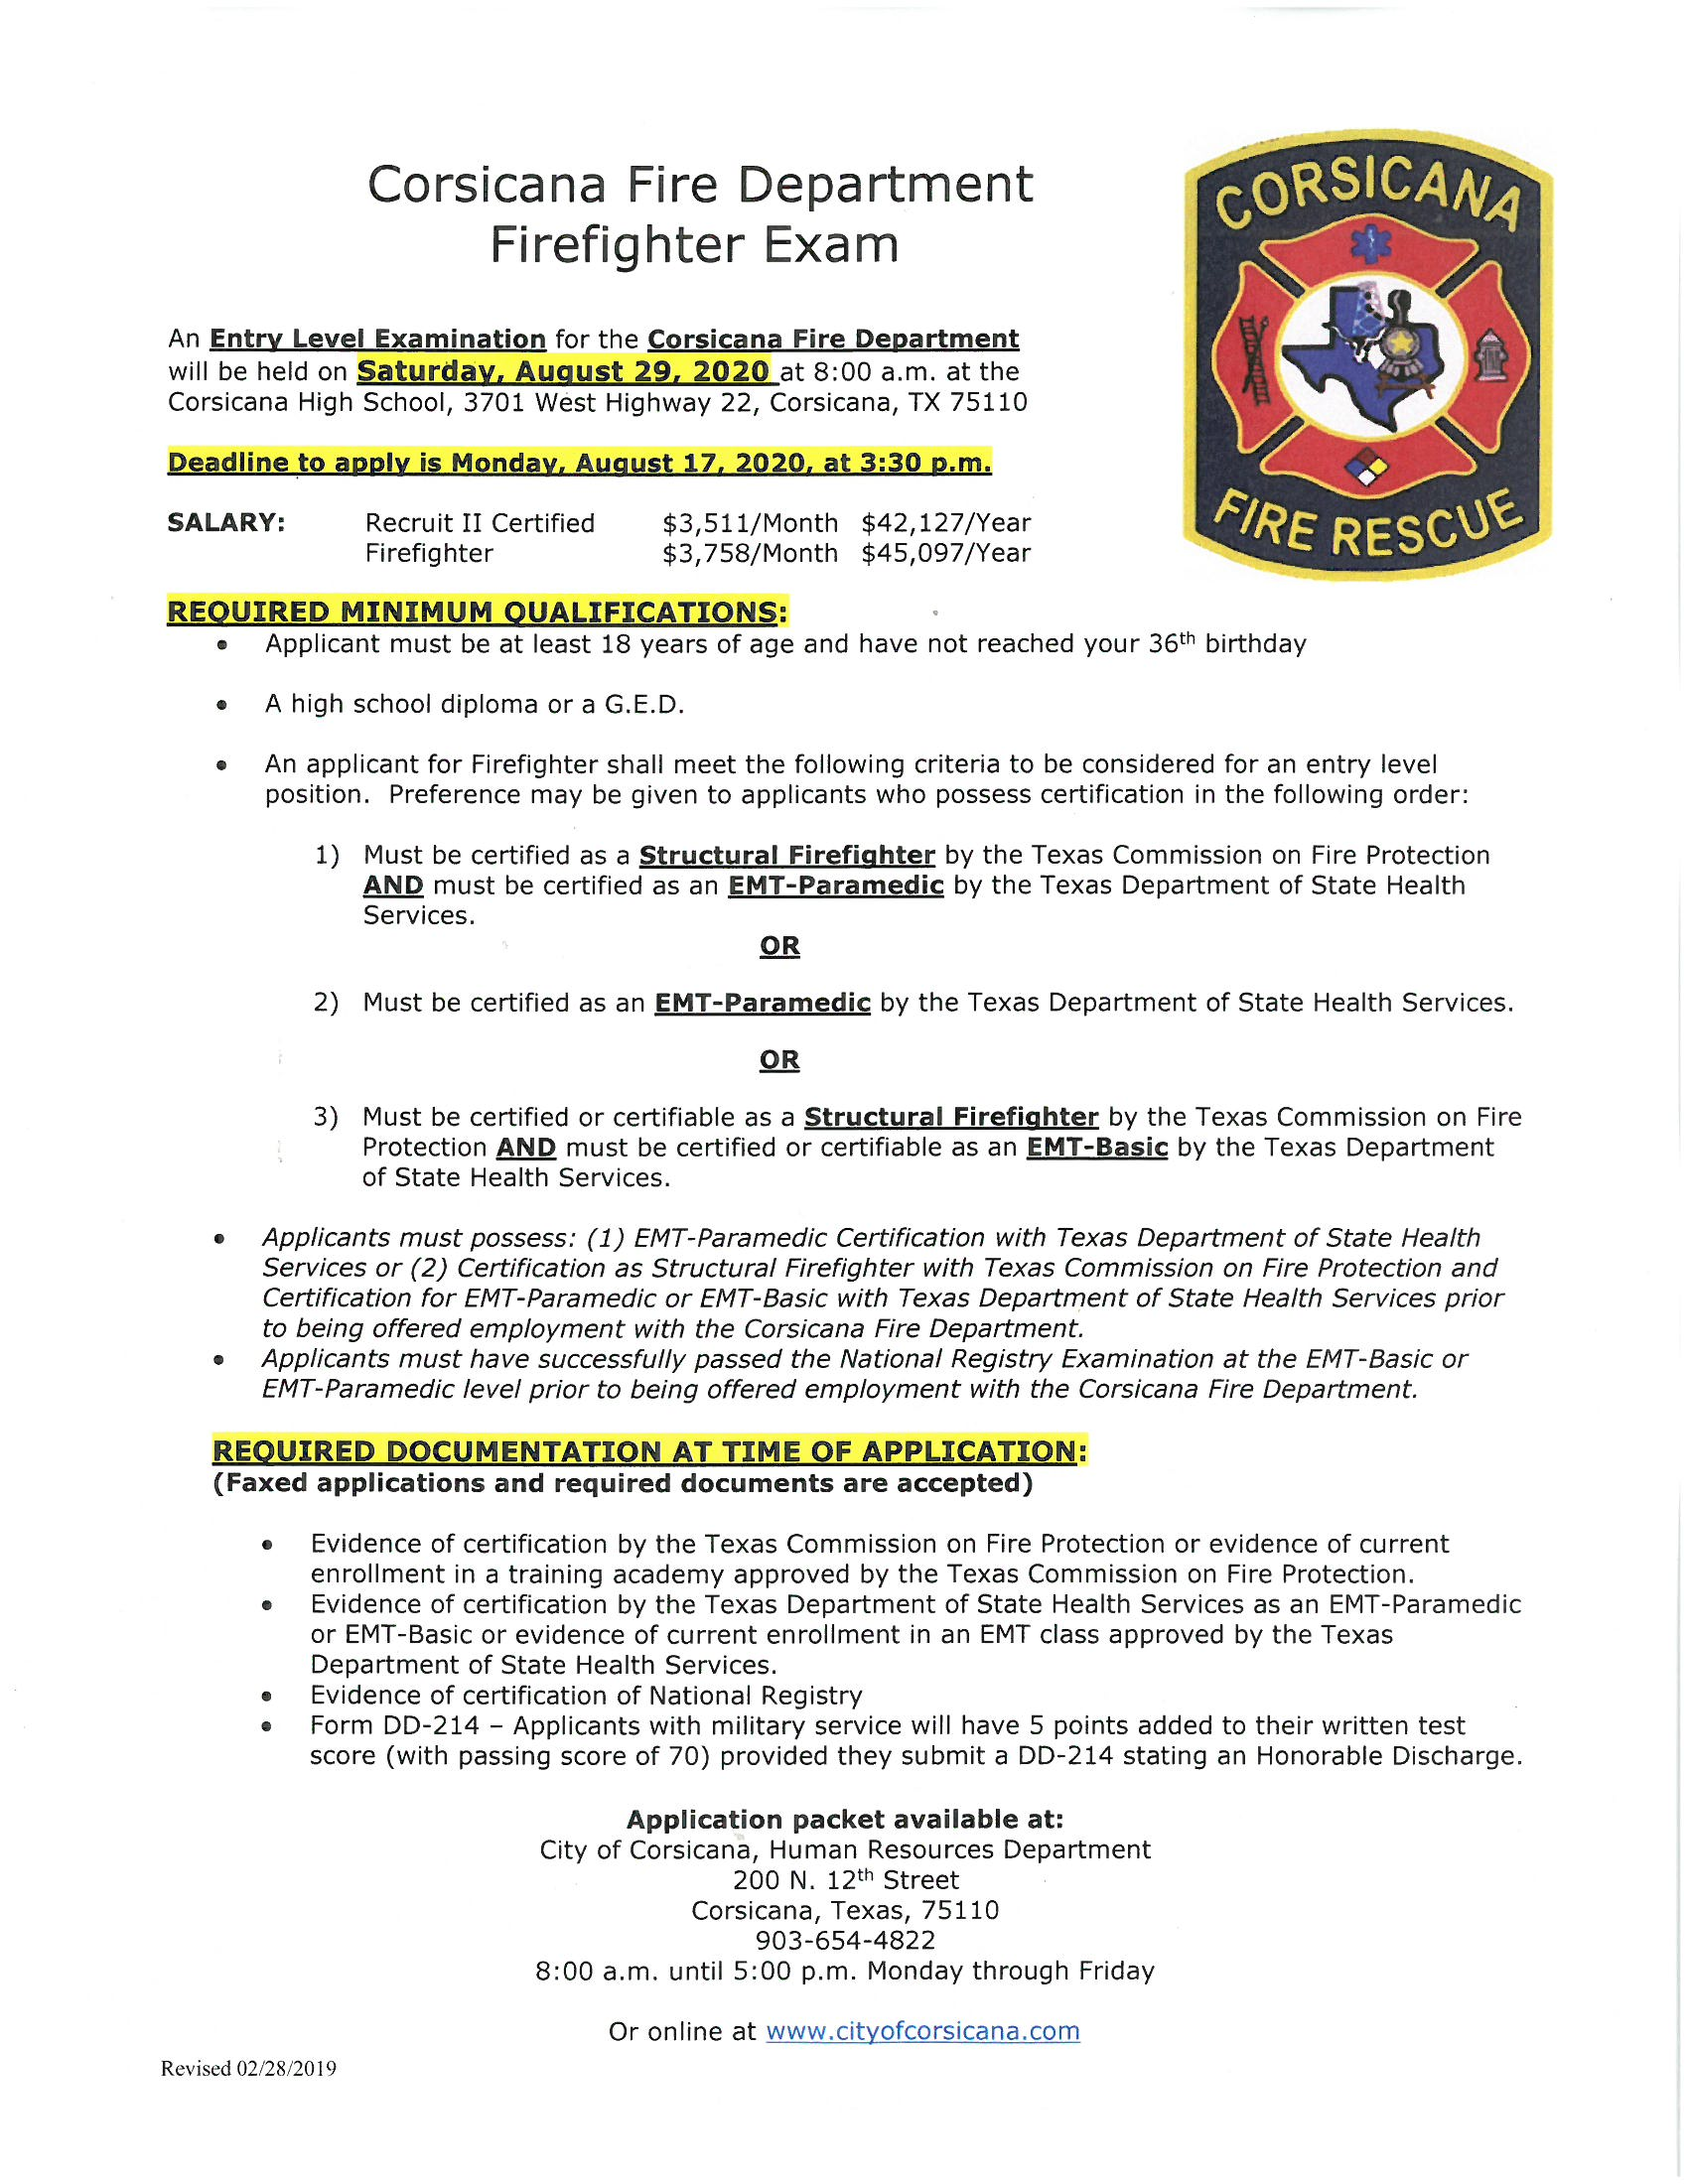 Aug. 29, 2020 Entry-Level Firefighter Test Posting and Pre-employment Application-3_Page_1